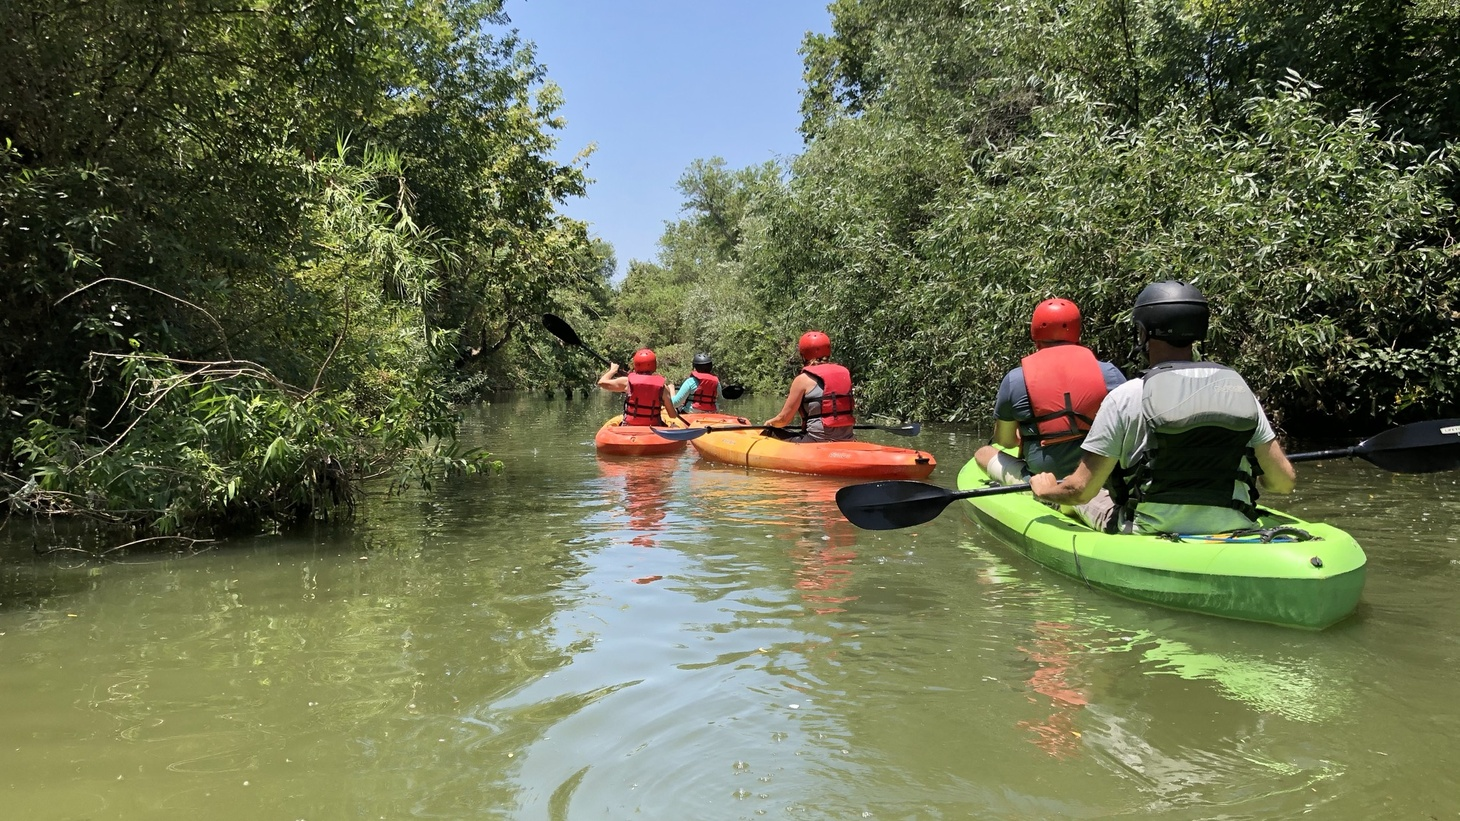 Kayakers on the LA River in the Sepulveda Basin.